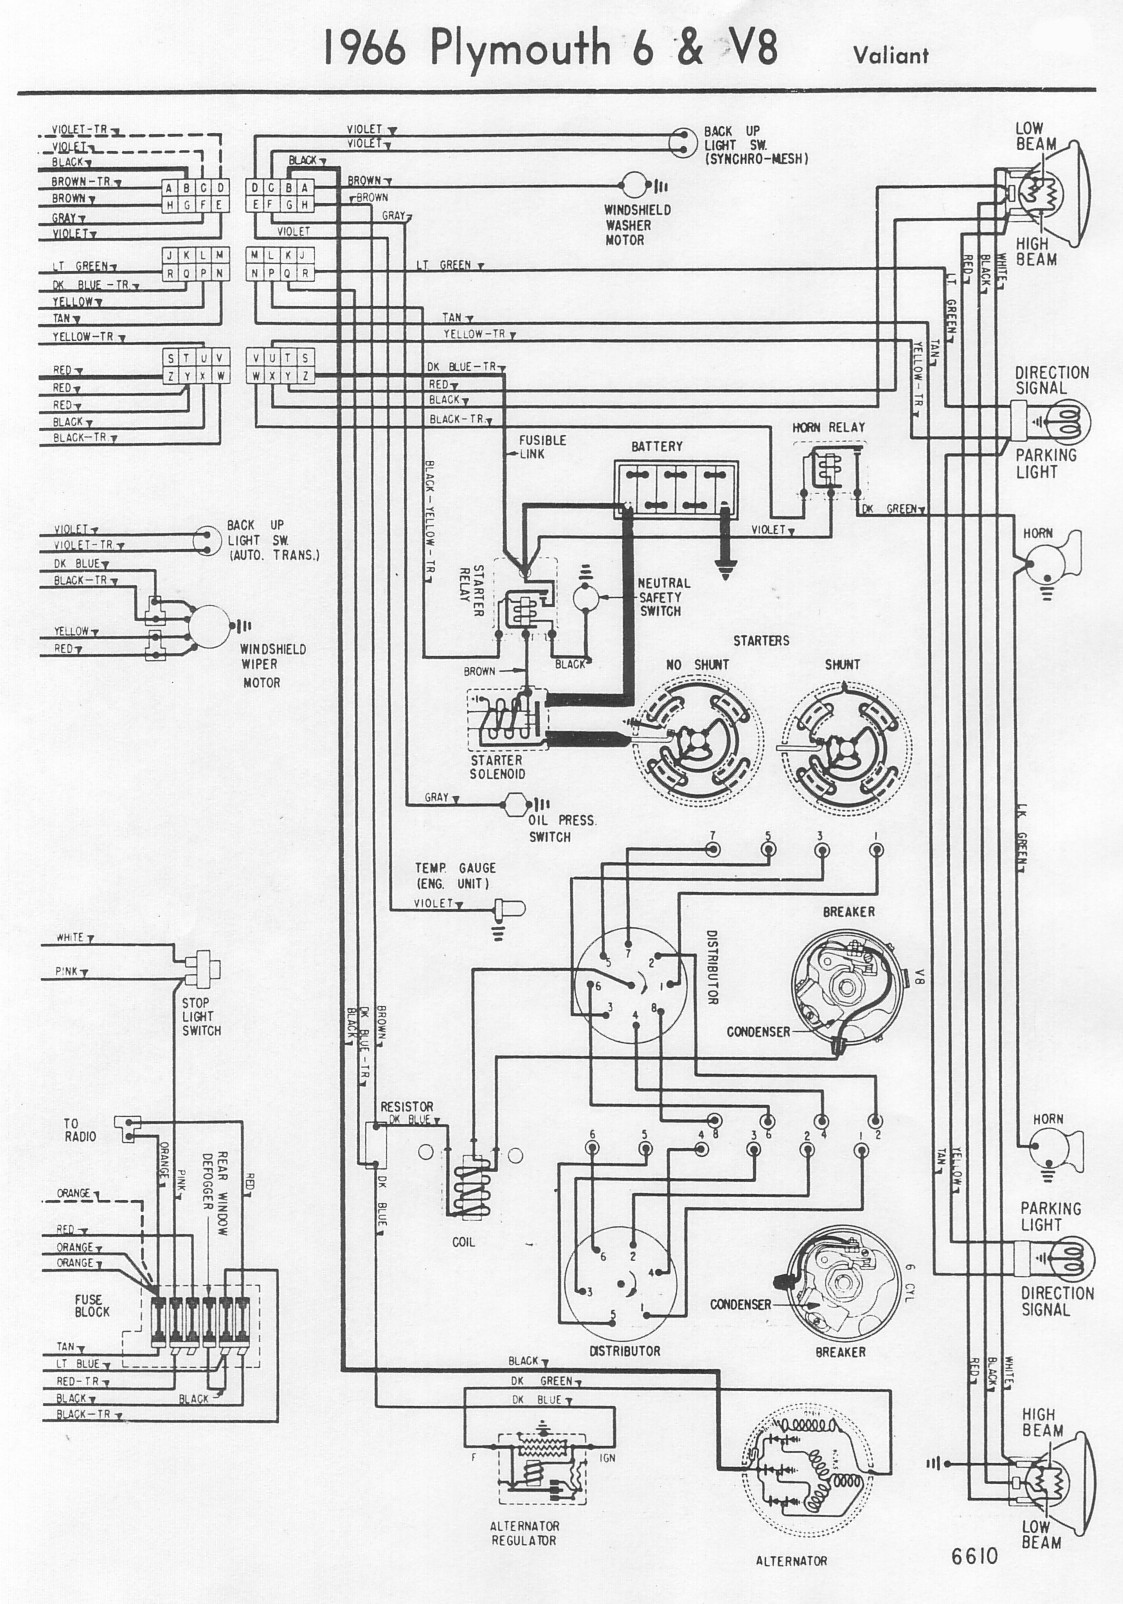 Wiring Diagram For 65 Plymouth 6